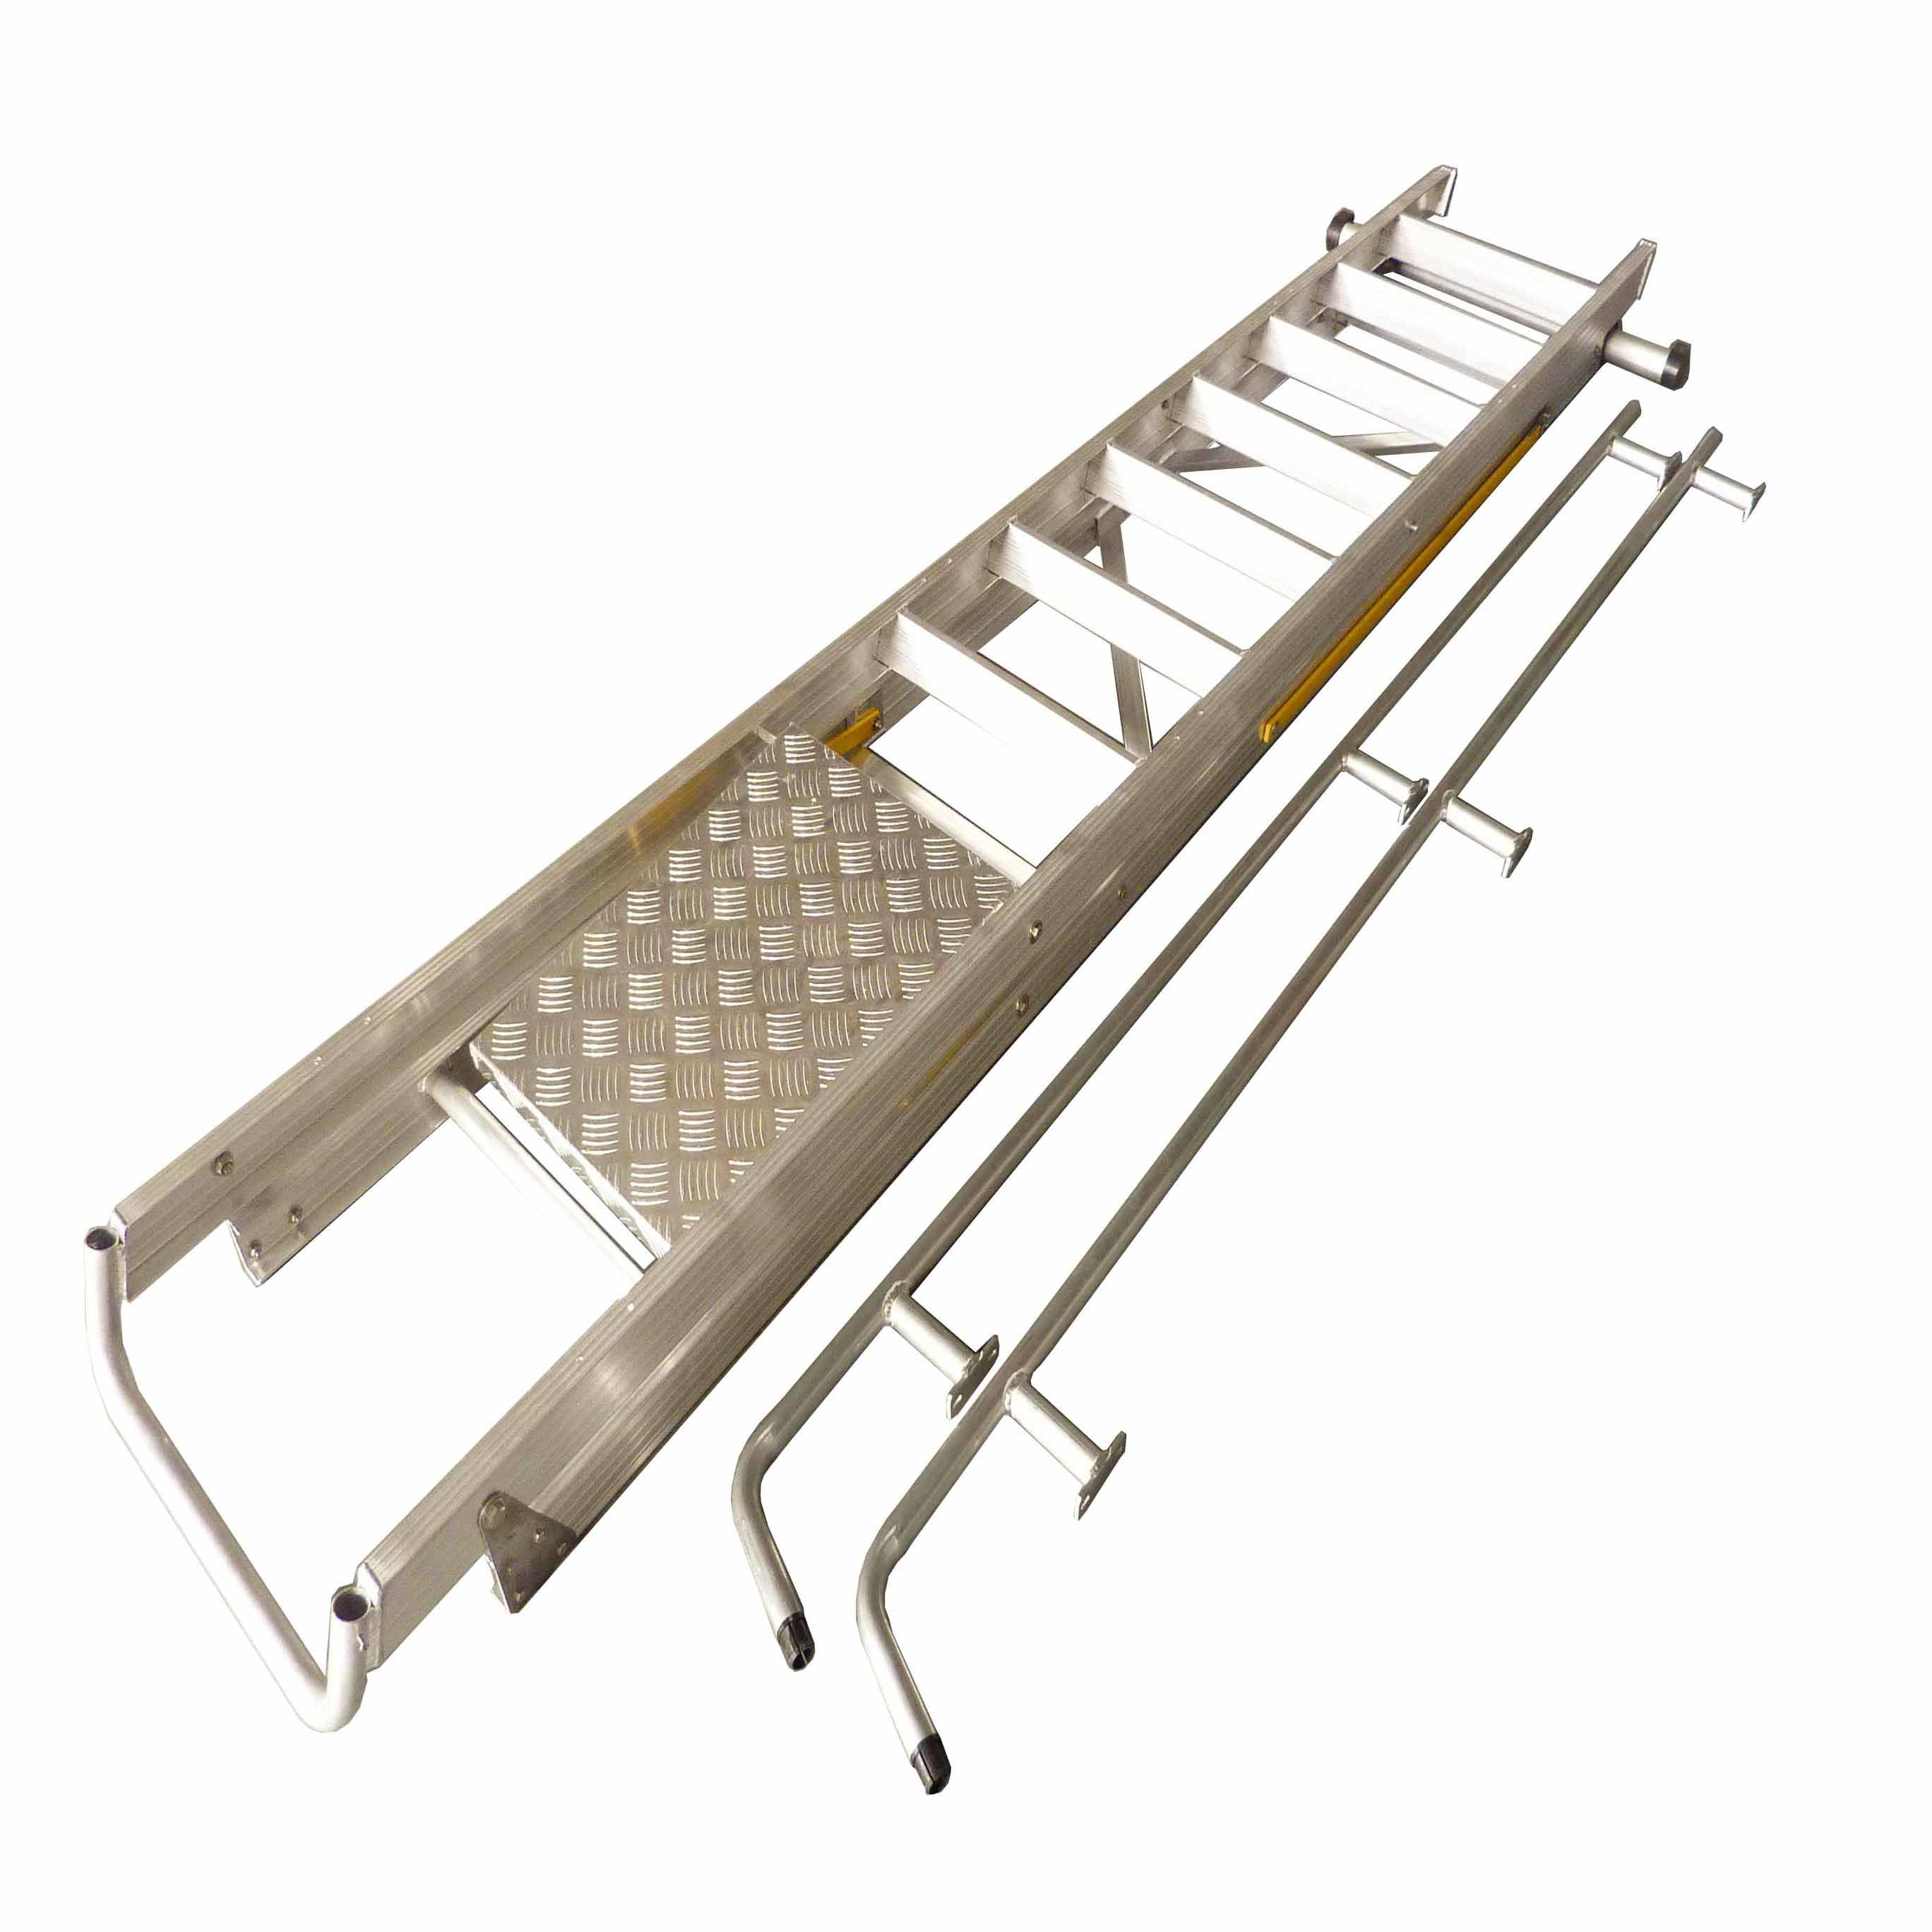 (375LBS) Aluminum Alloy Folding Platform and Step Ladder with Casters